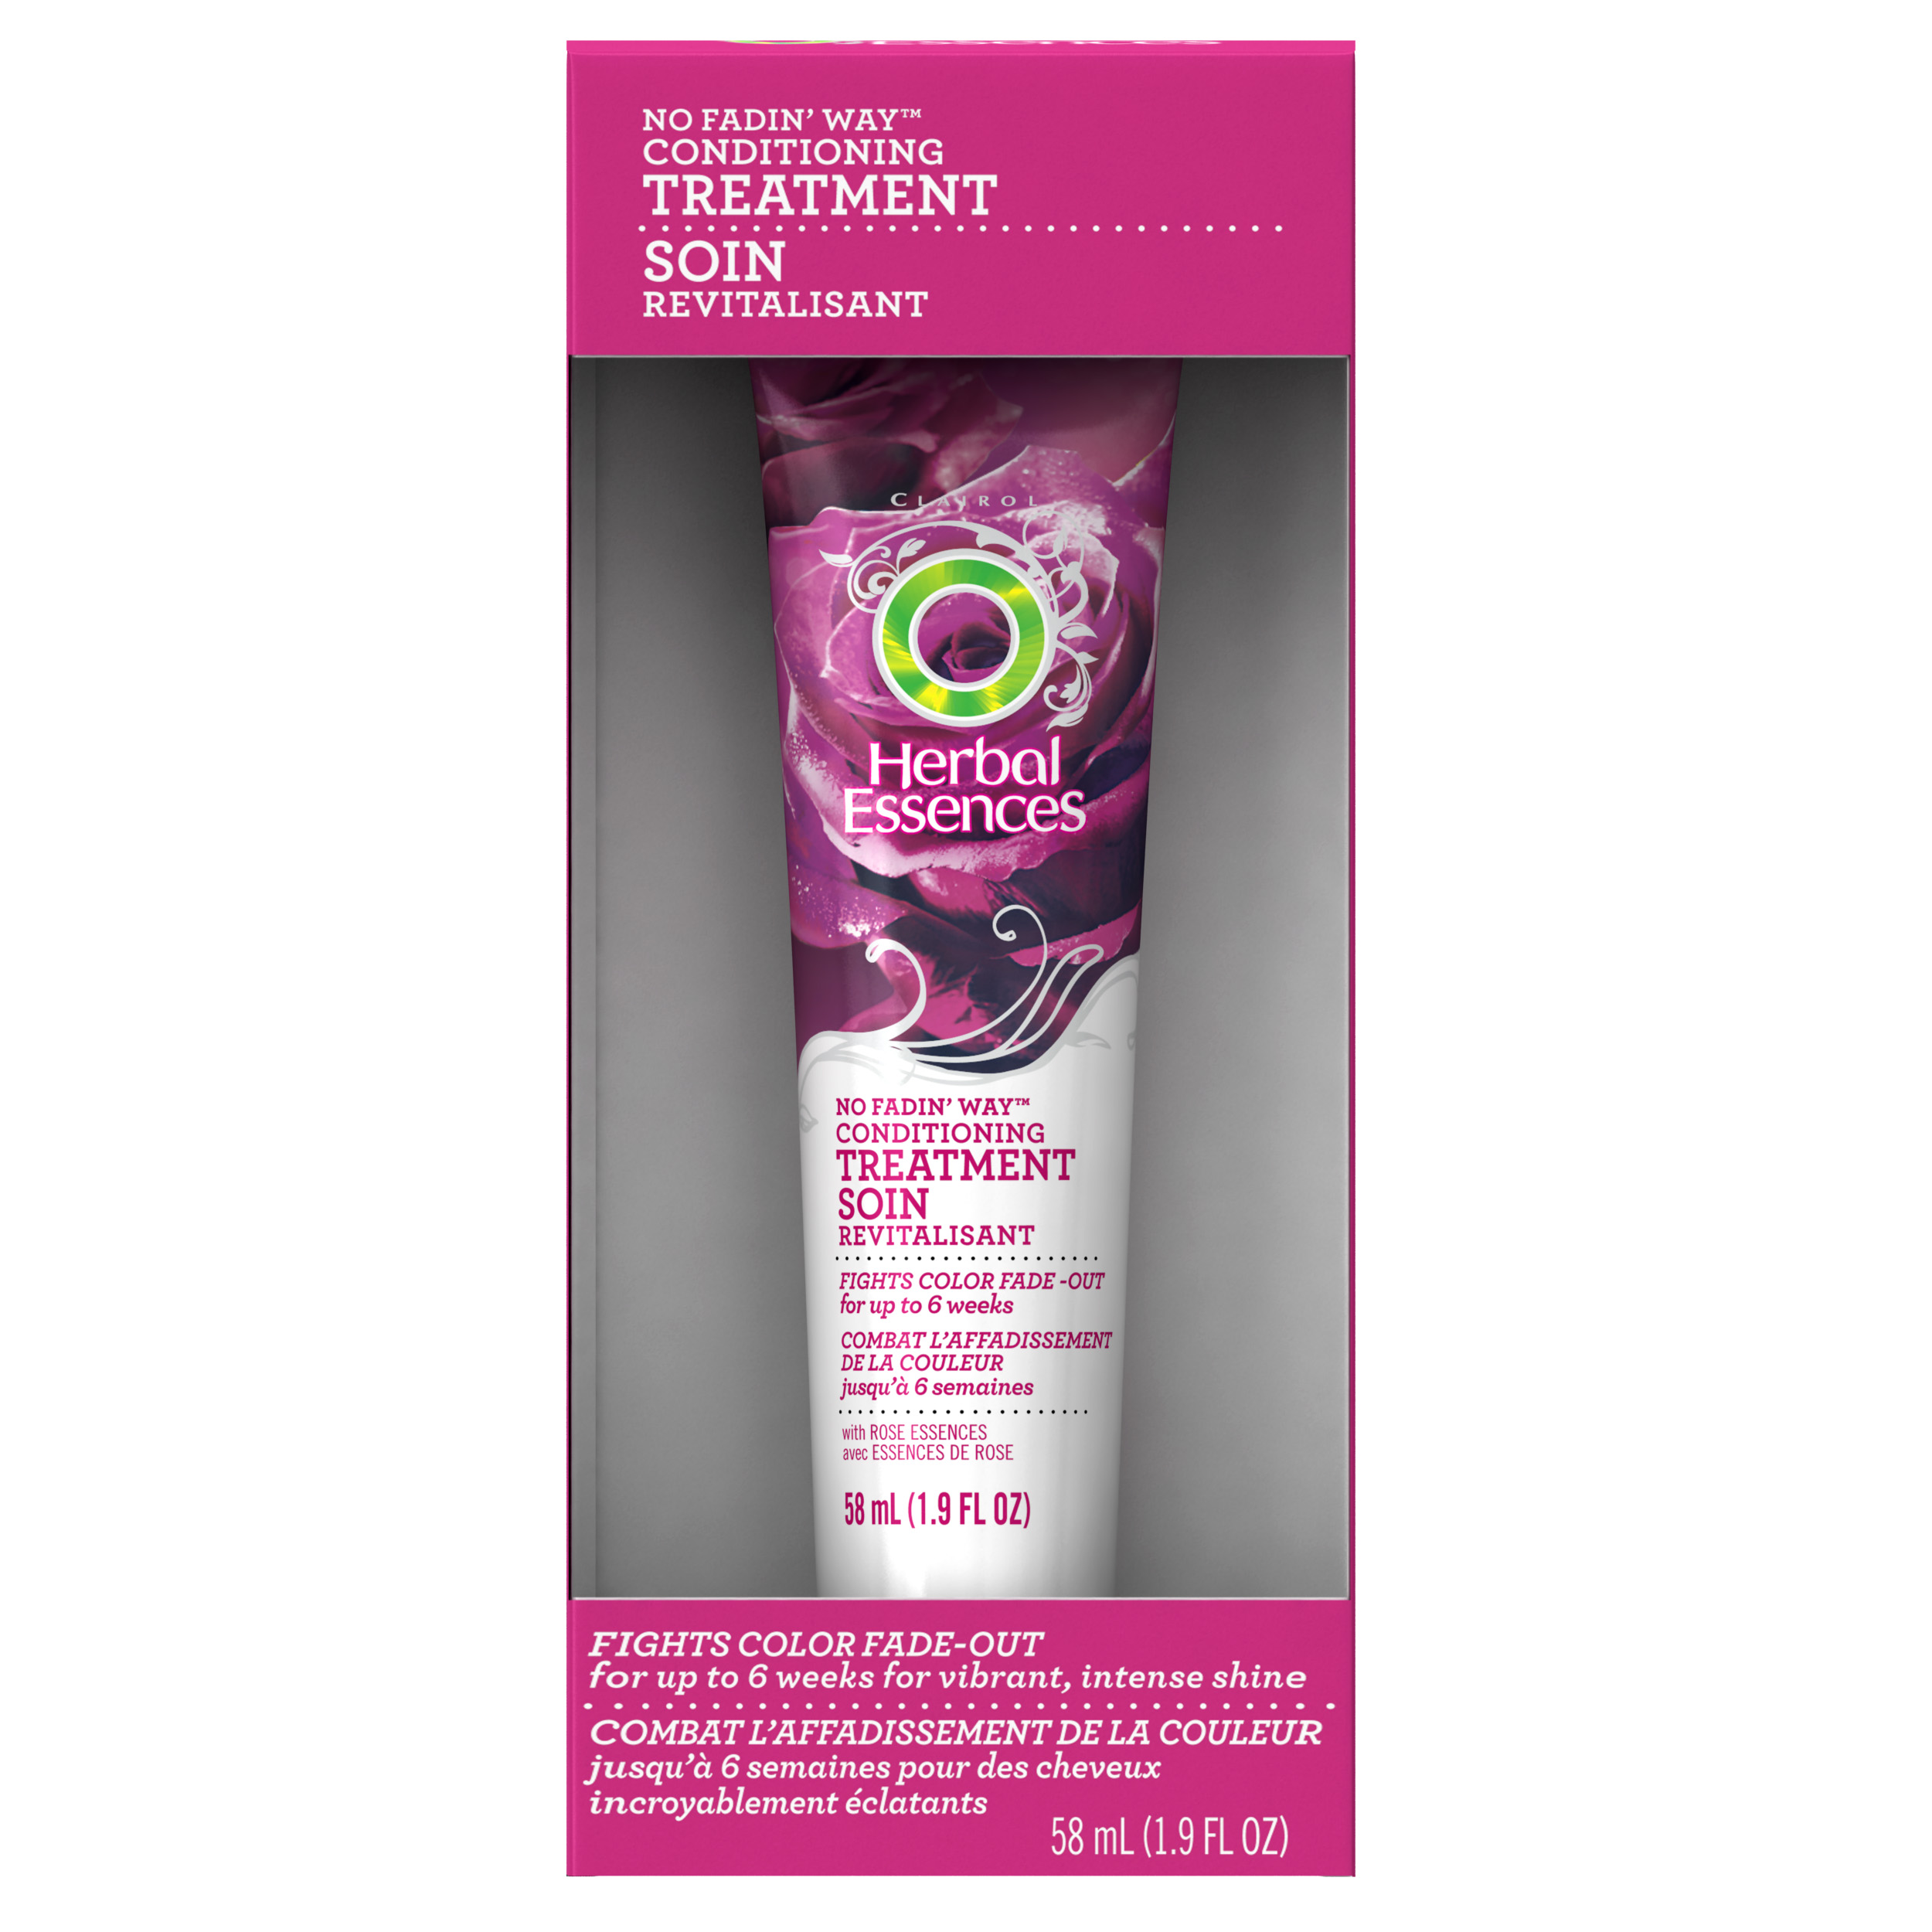 Herbal Essences No Fadin' Way Conditioning Treatment 1.9fl oz